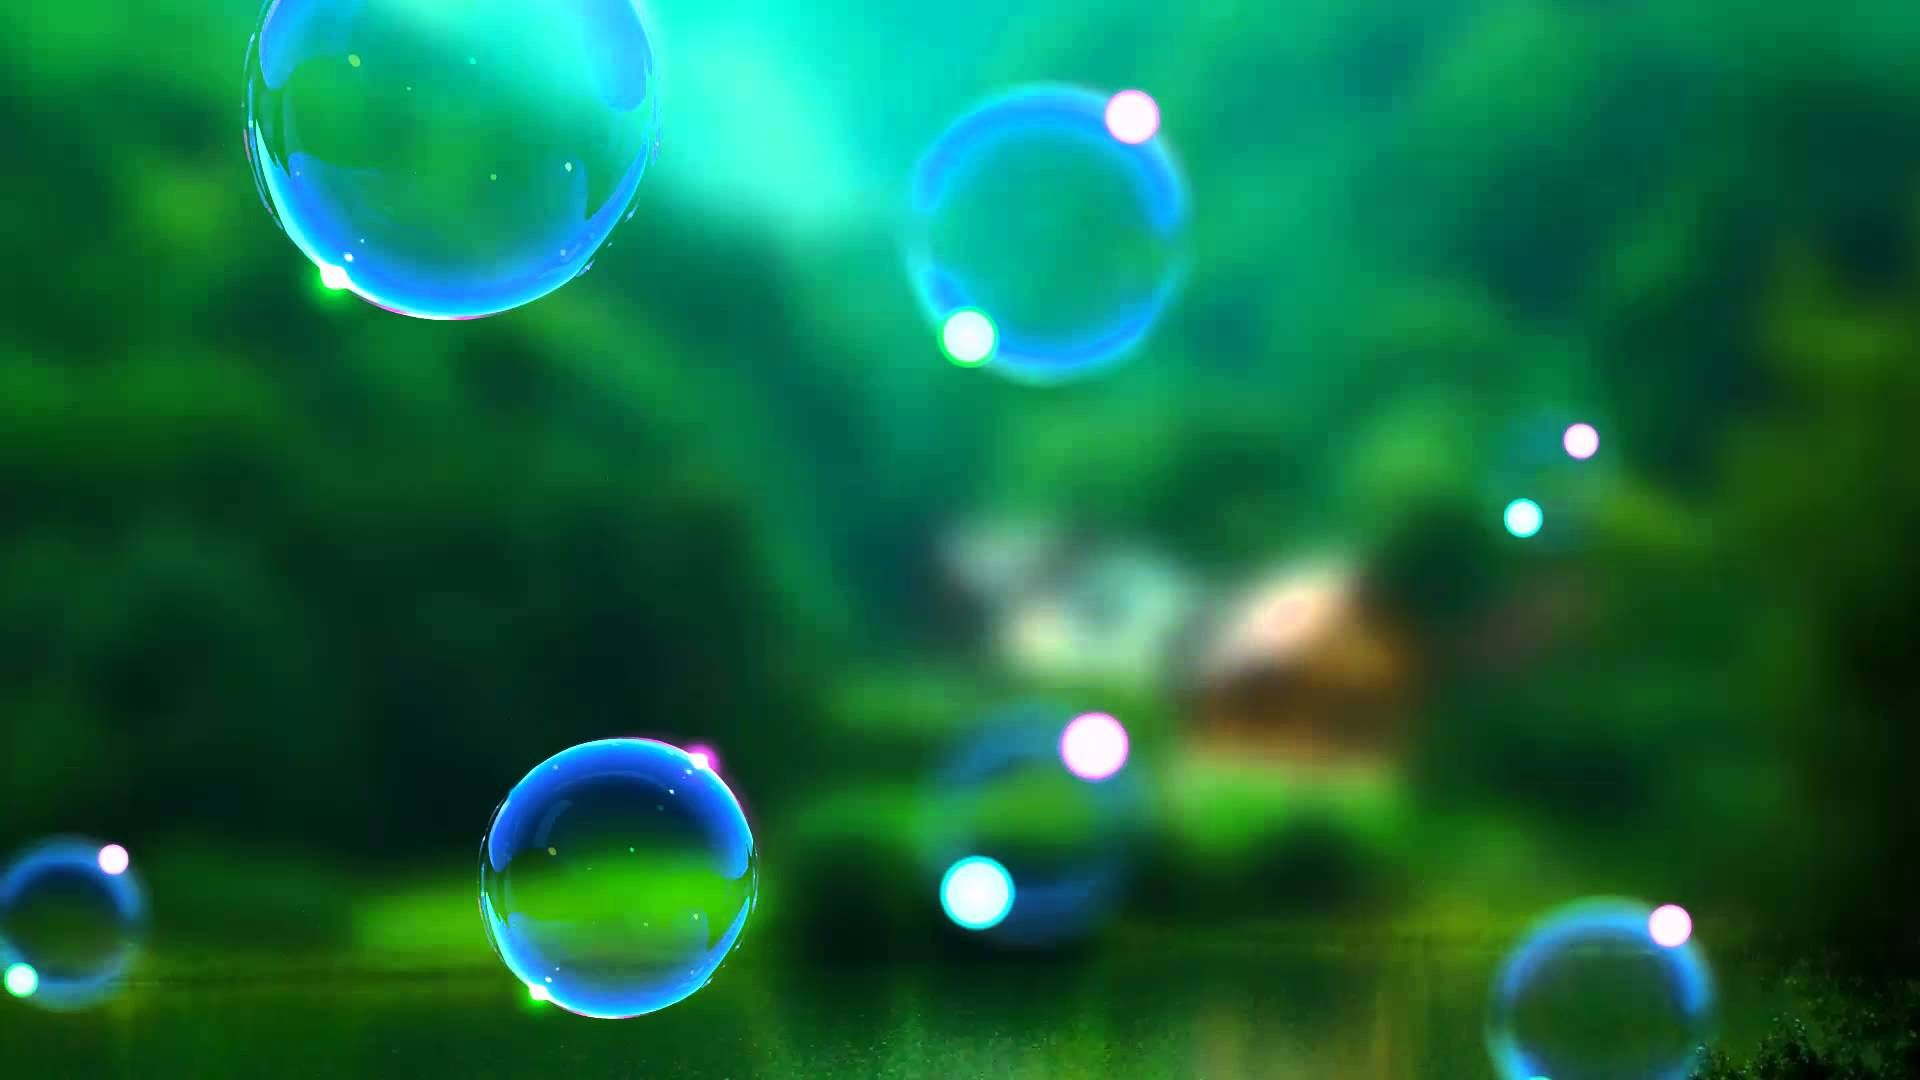 Video Background HDBubble Animation Video! As Realistic